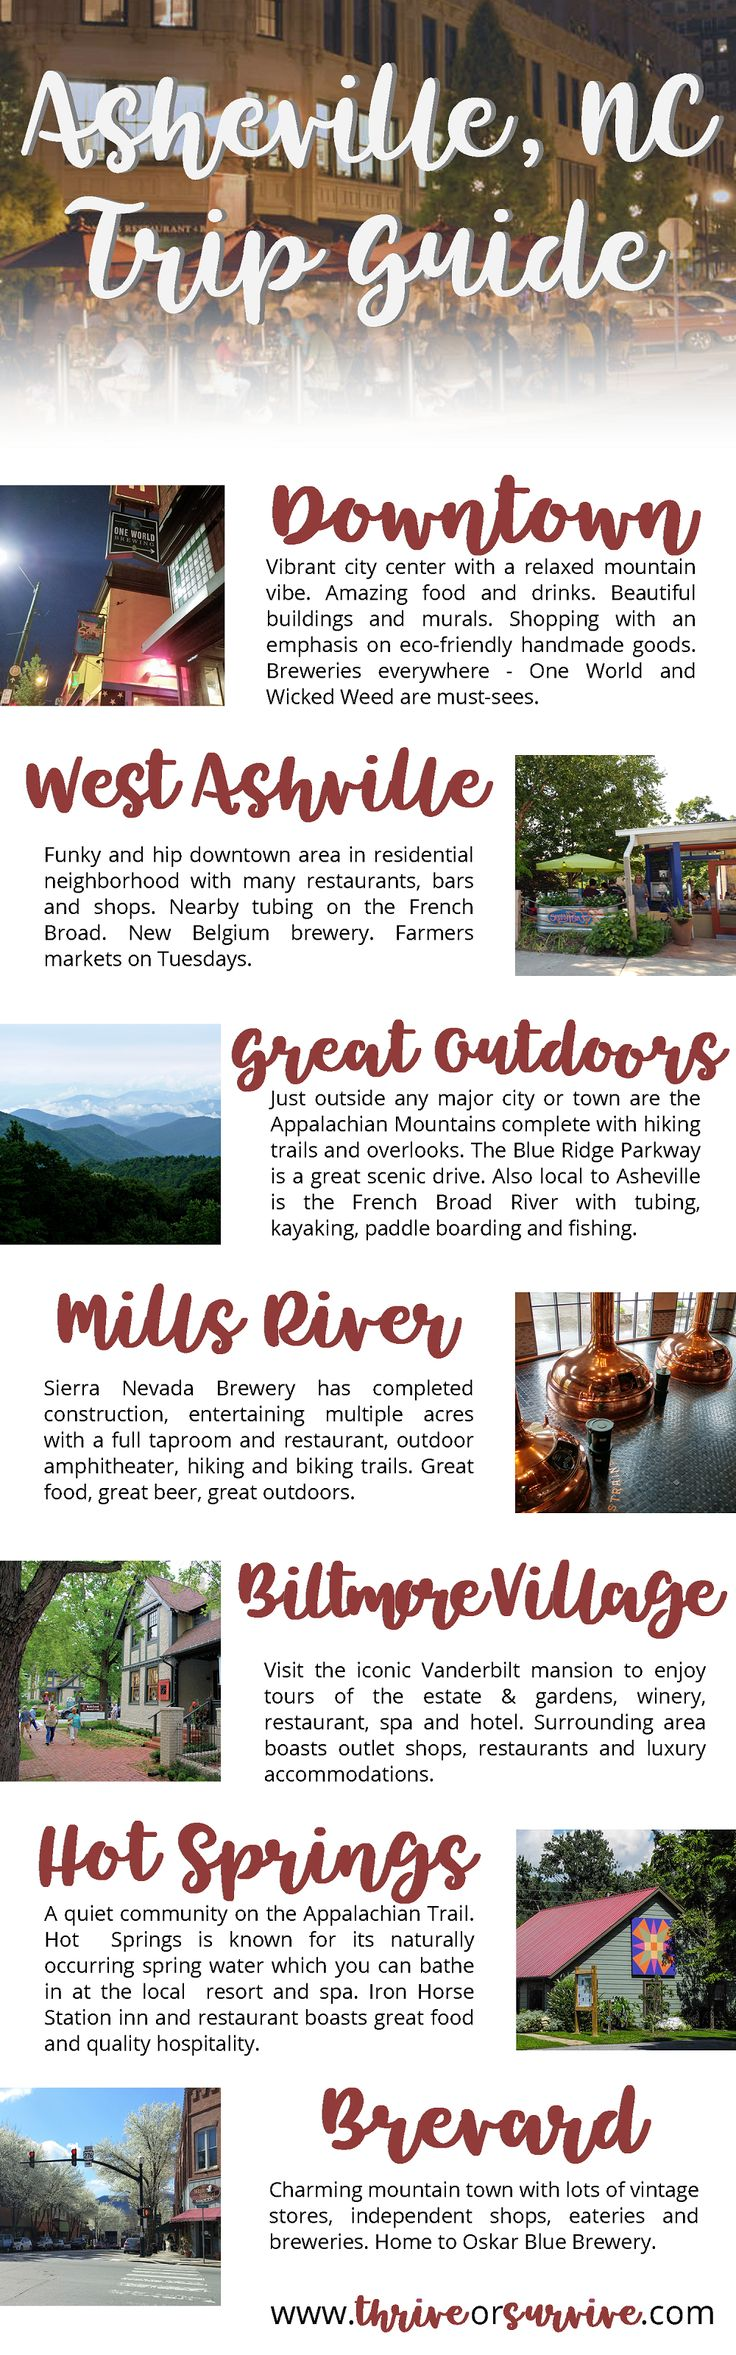 Asheville, North Carolina Trip Guide